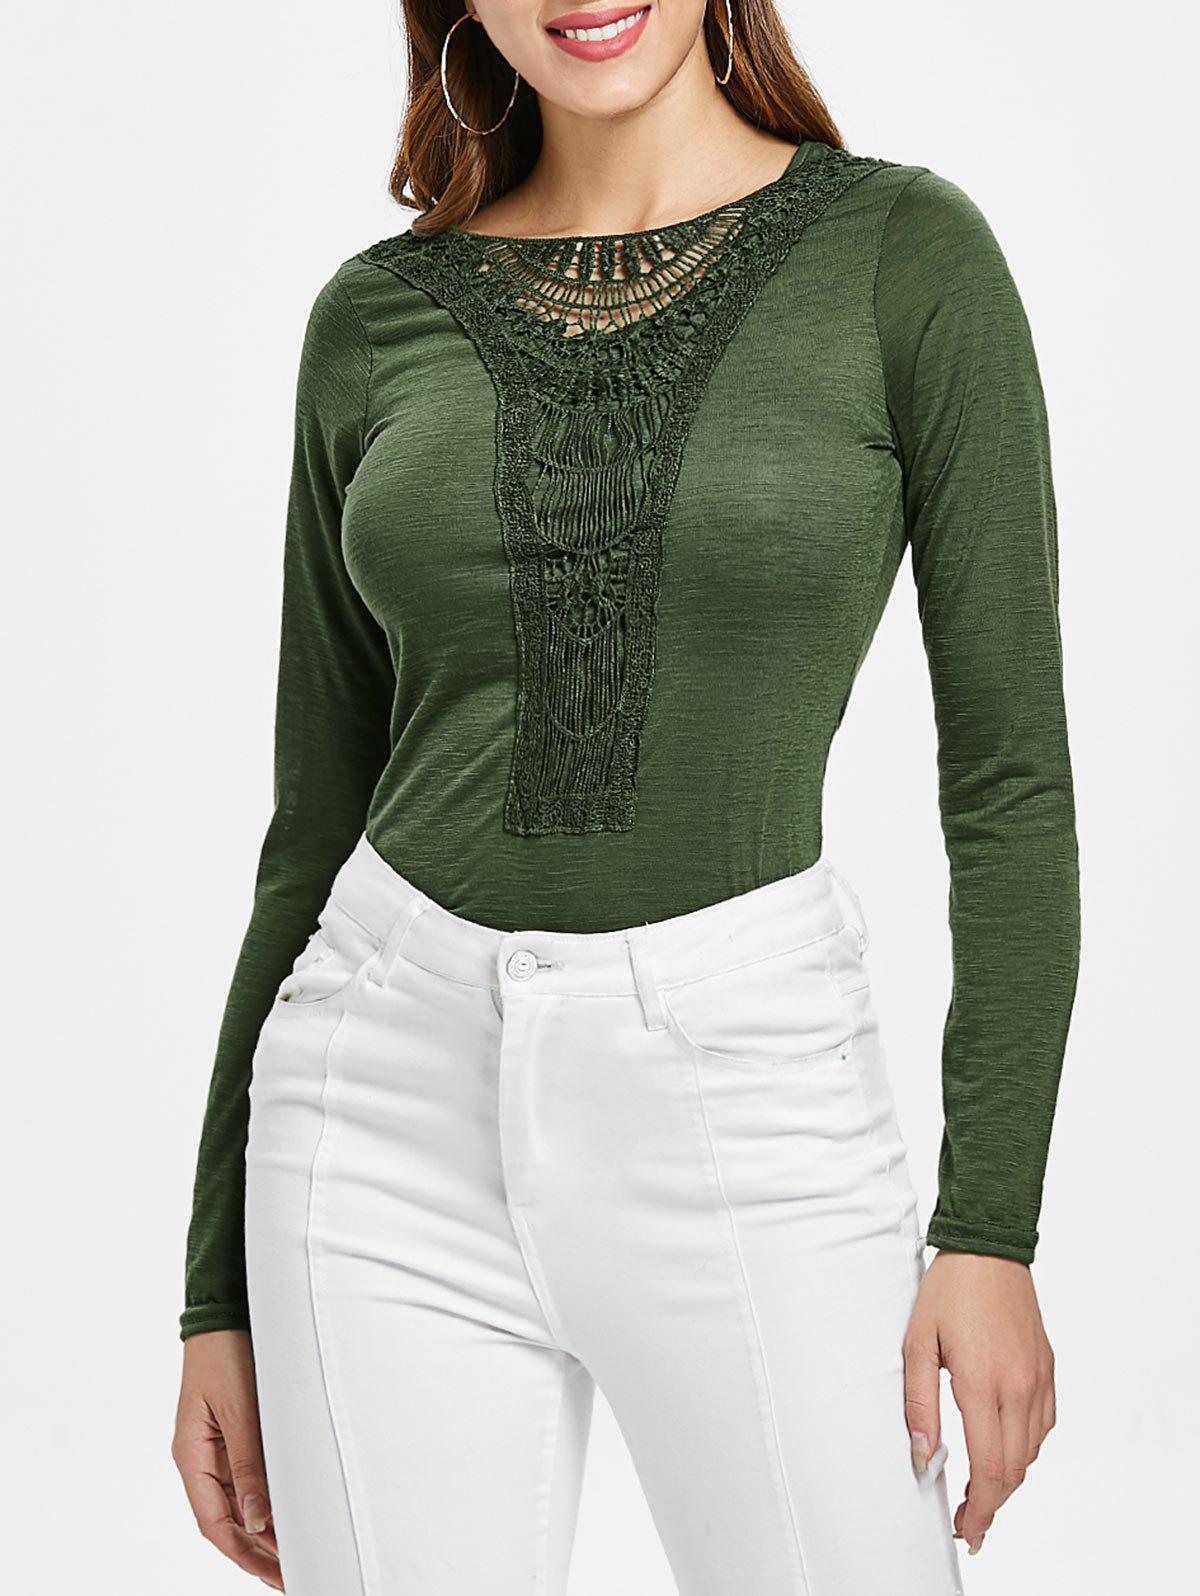 Shop Casual Scoop Neck Hollow Out Crochet Spliced Solid Color T-Shirt For Women